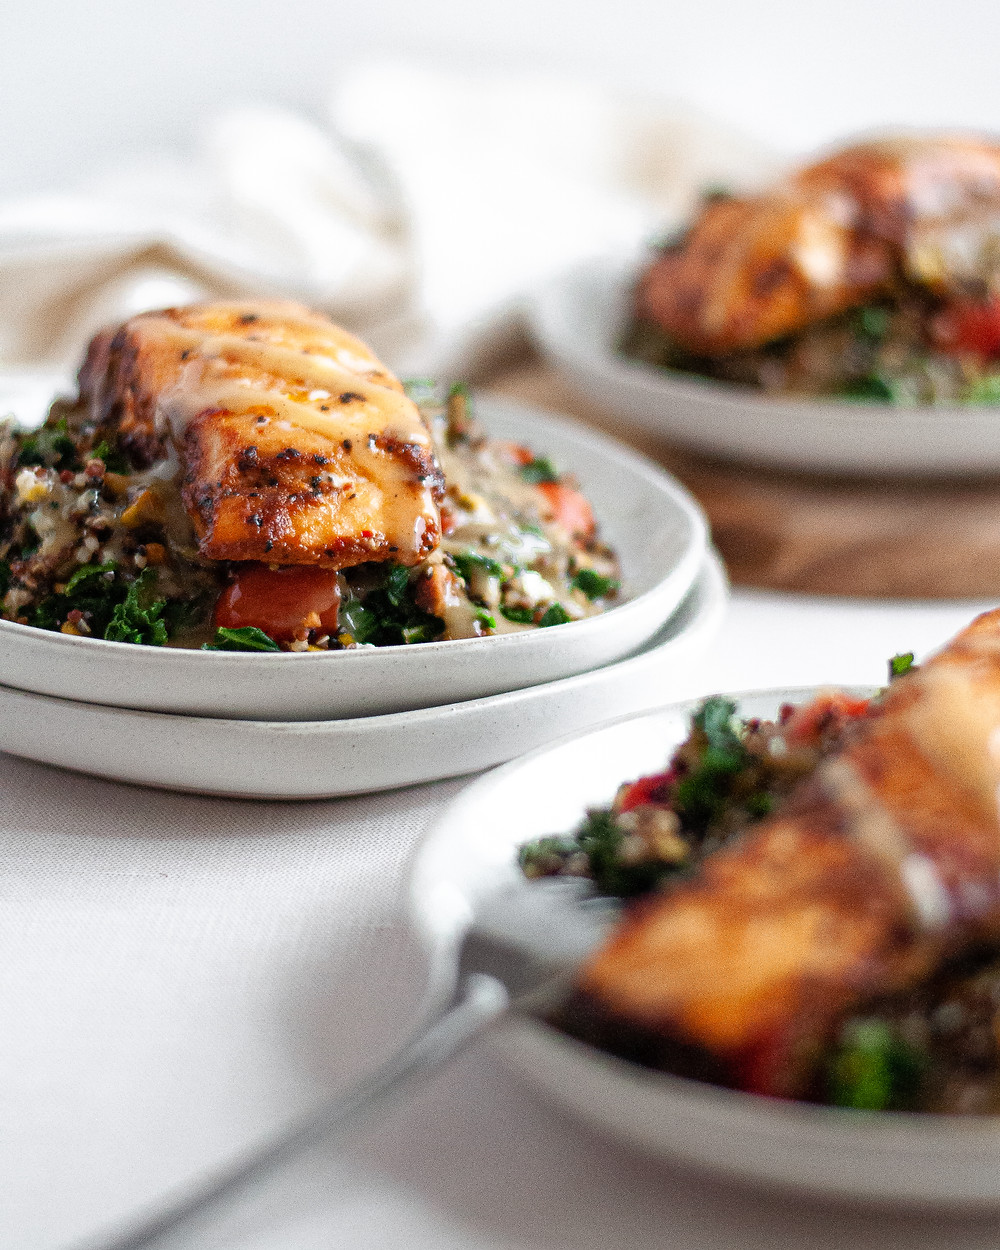 Three servings of kale and quinoa salad, topped with grilled salmon and homemade maple tahini dressing